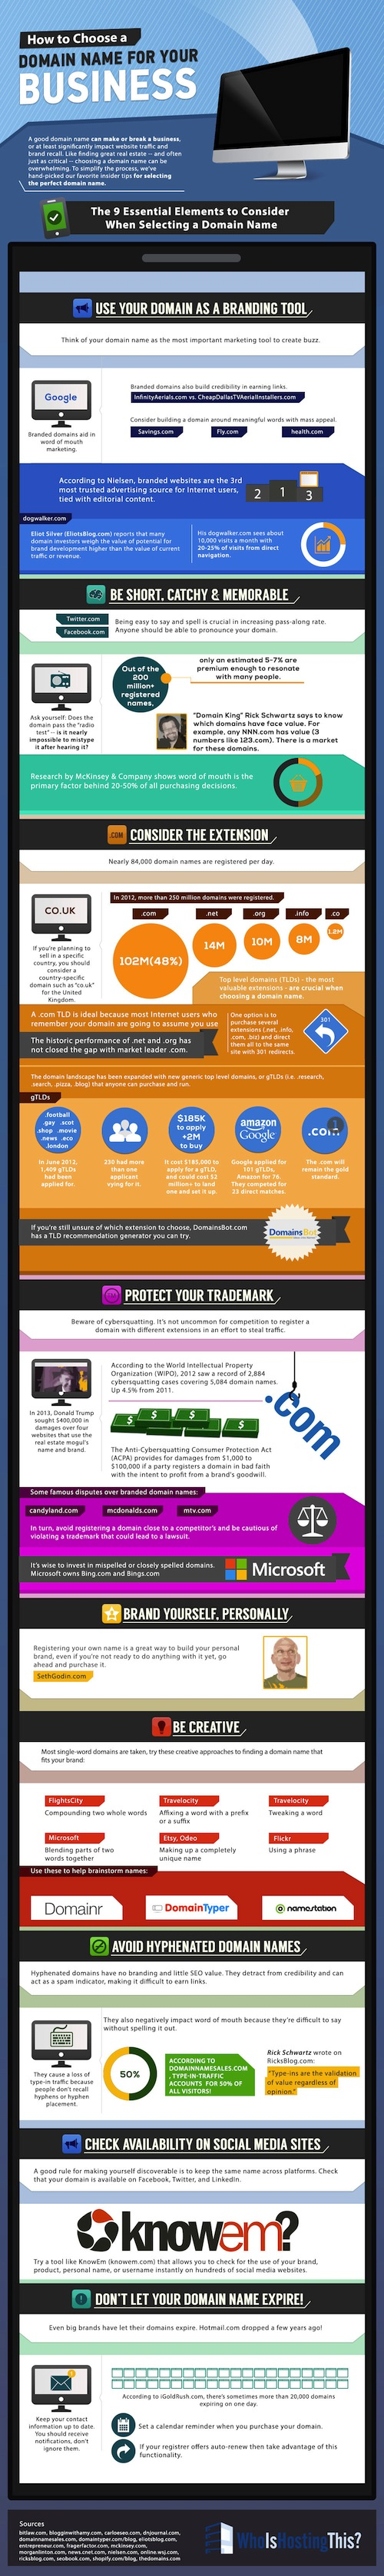 9-essential-elements-choosing-domain-name-infographic